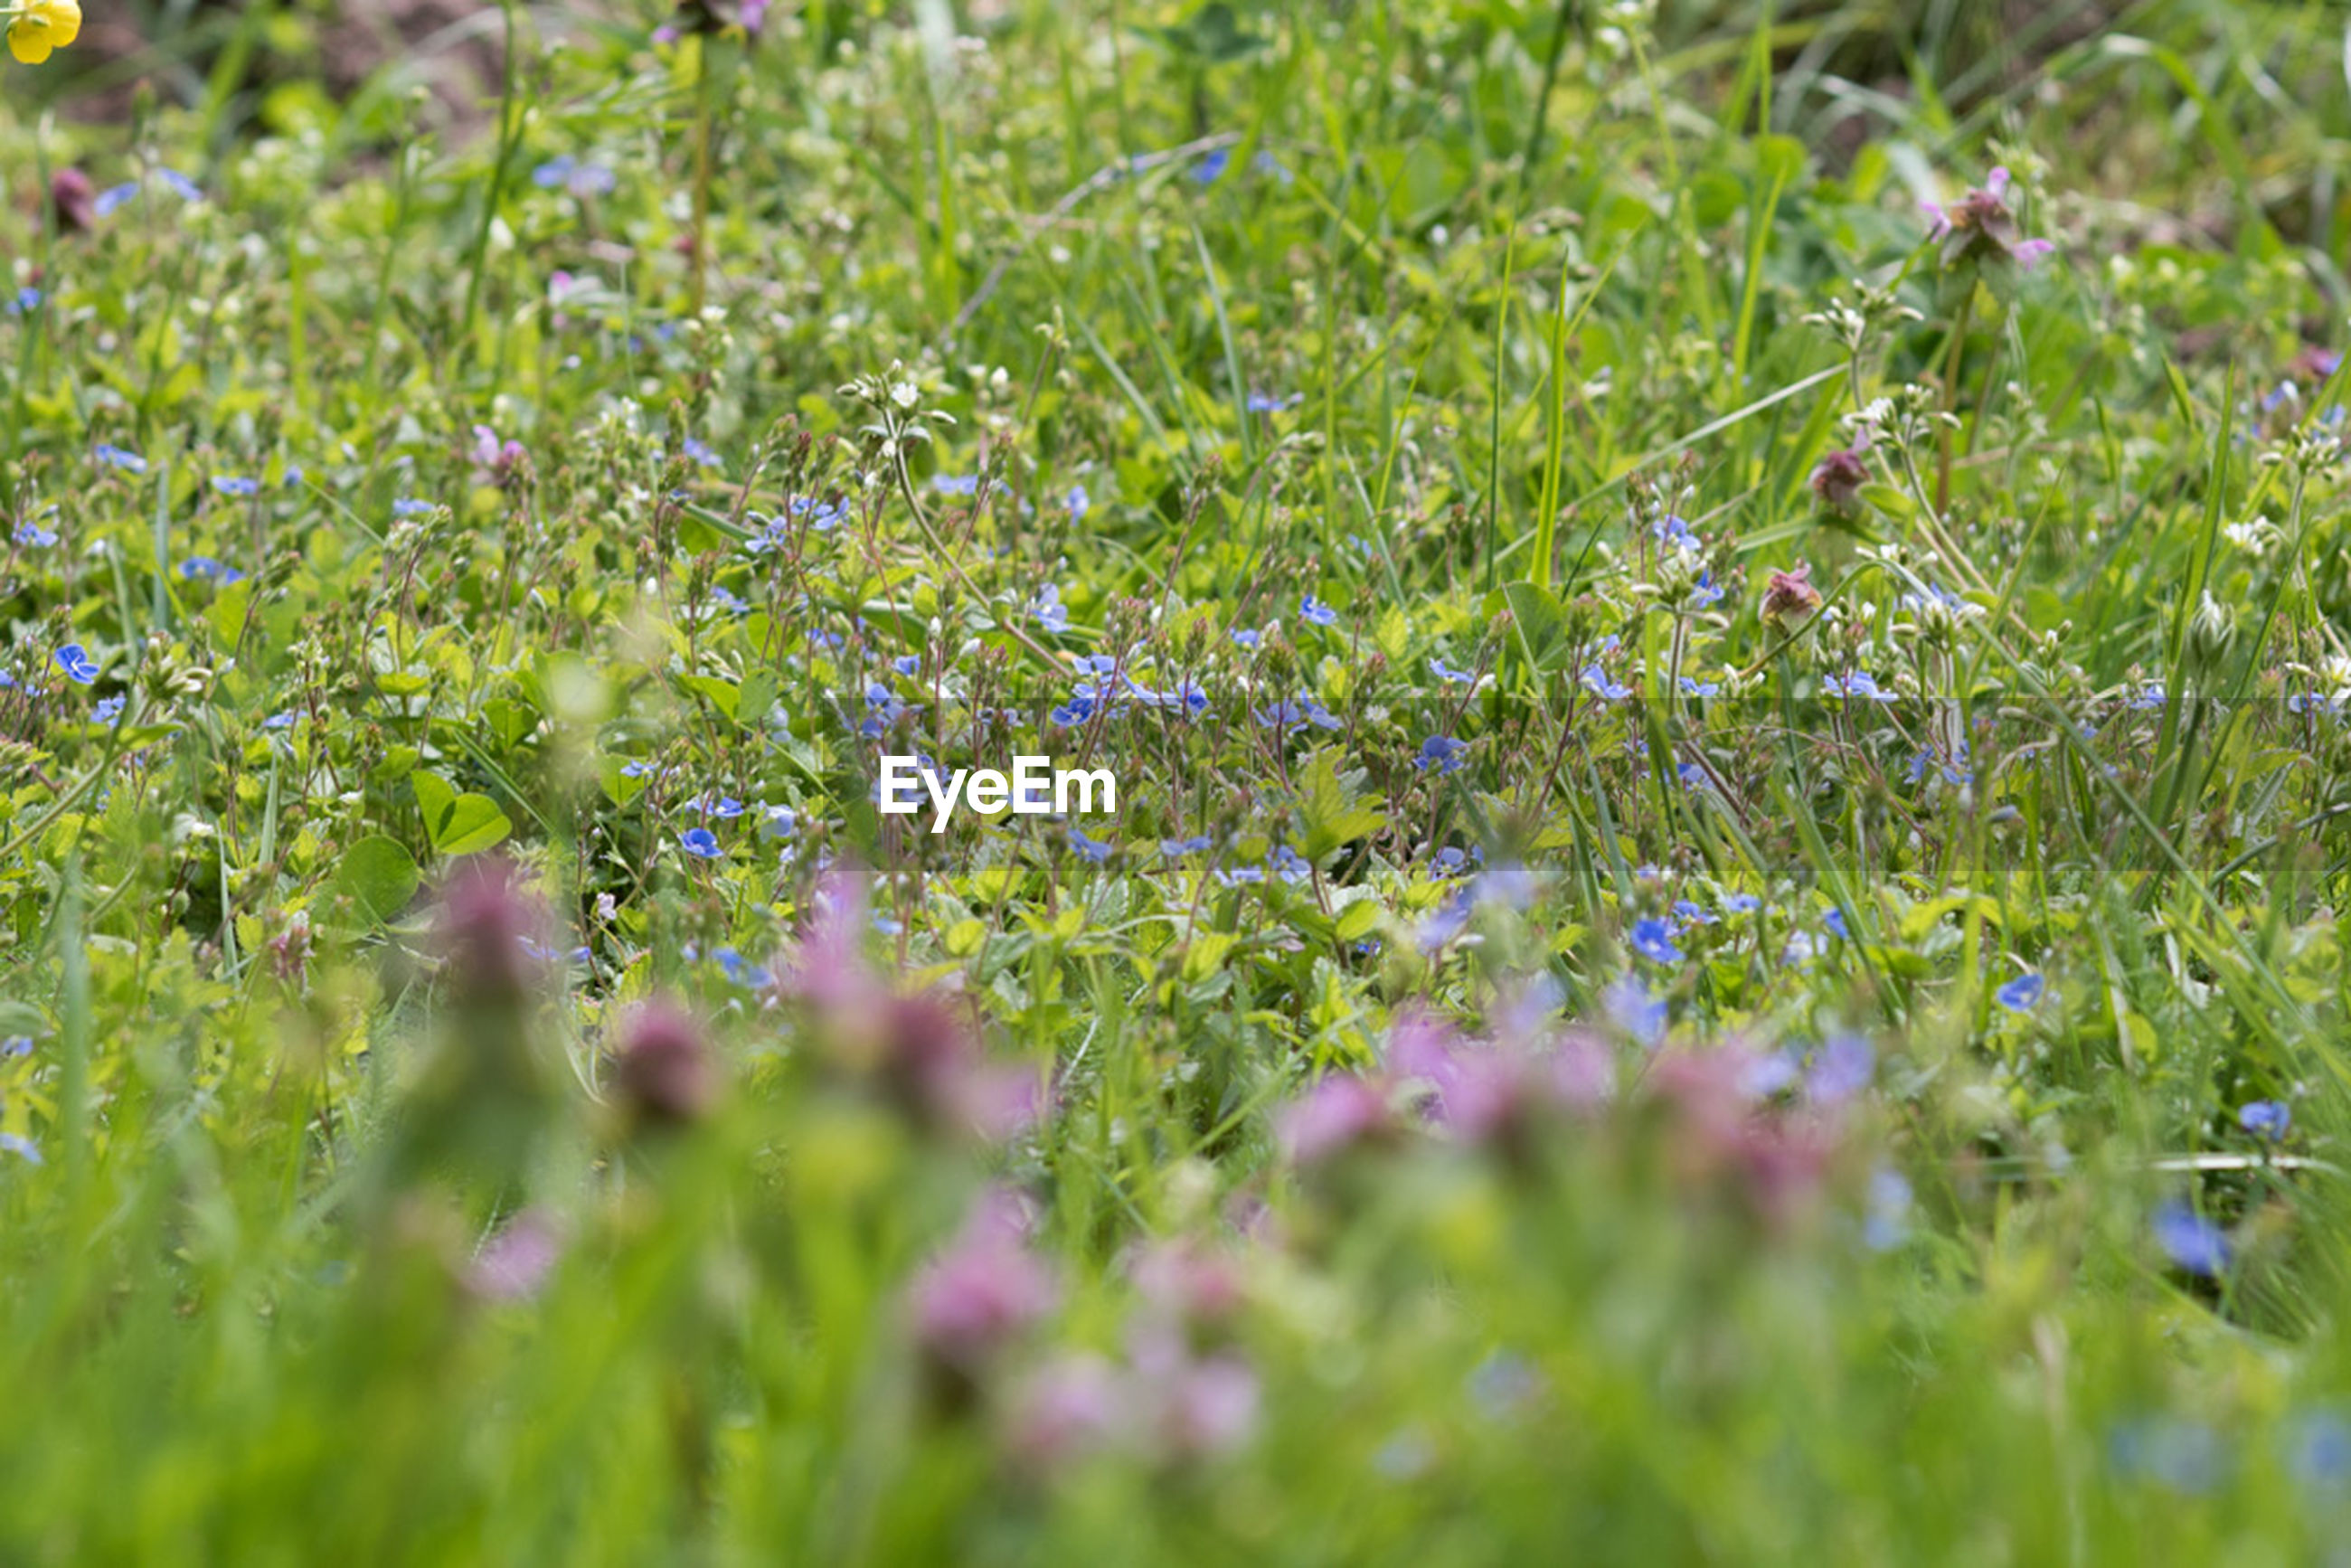 selective focus, growth, nature, plant, green color, grass, field, flower, no people, meadow, beauty in nature, outdoors, day, freshness, fragility, close-up